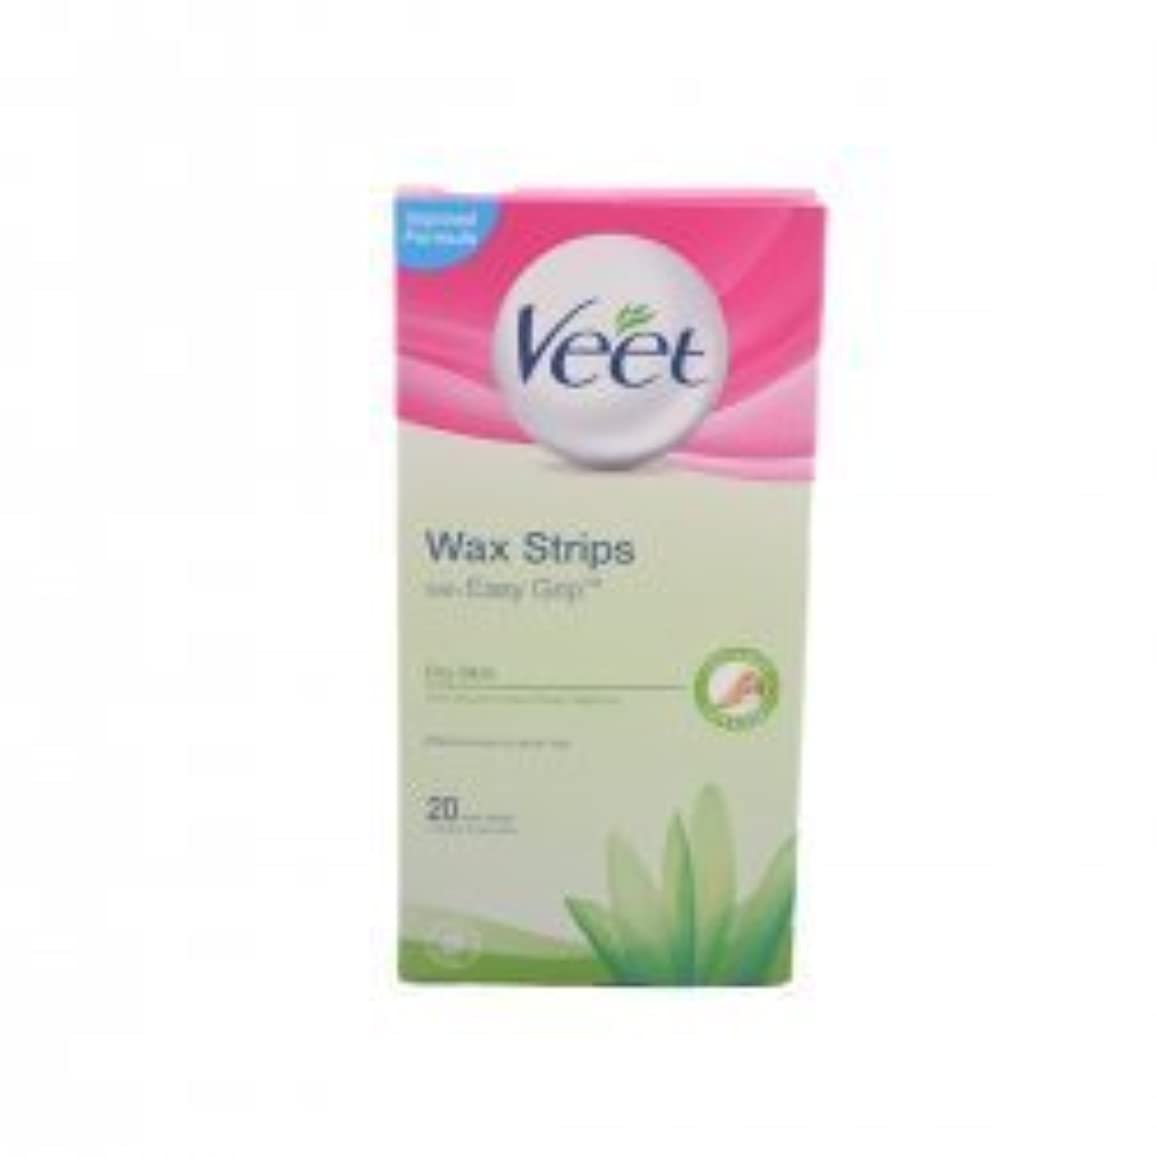 縮れたグレートオーク突然Veet For Men Cold Wax Strips Hair removal strips by Veet [並行輸入品]